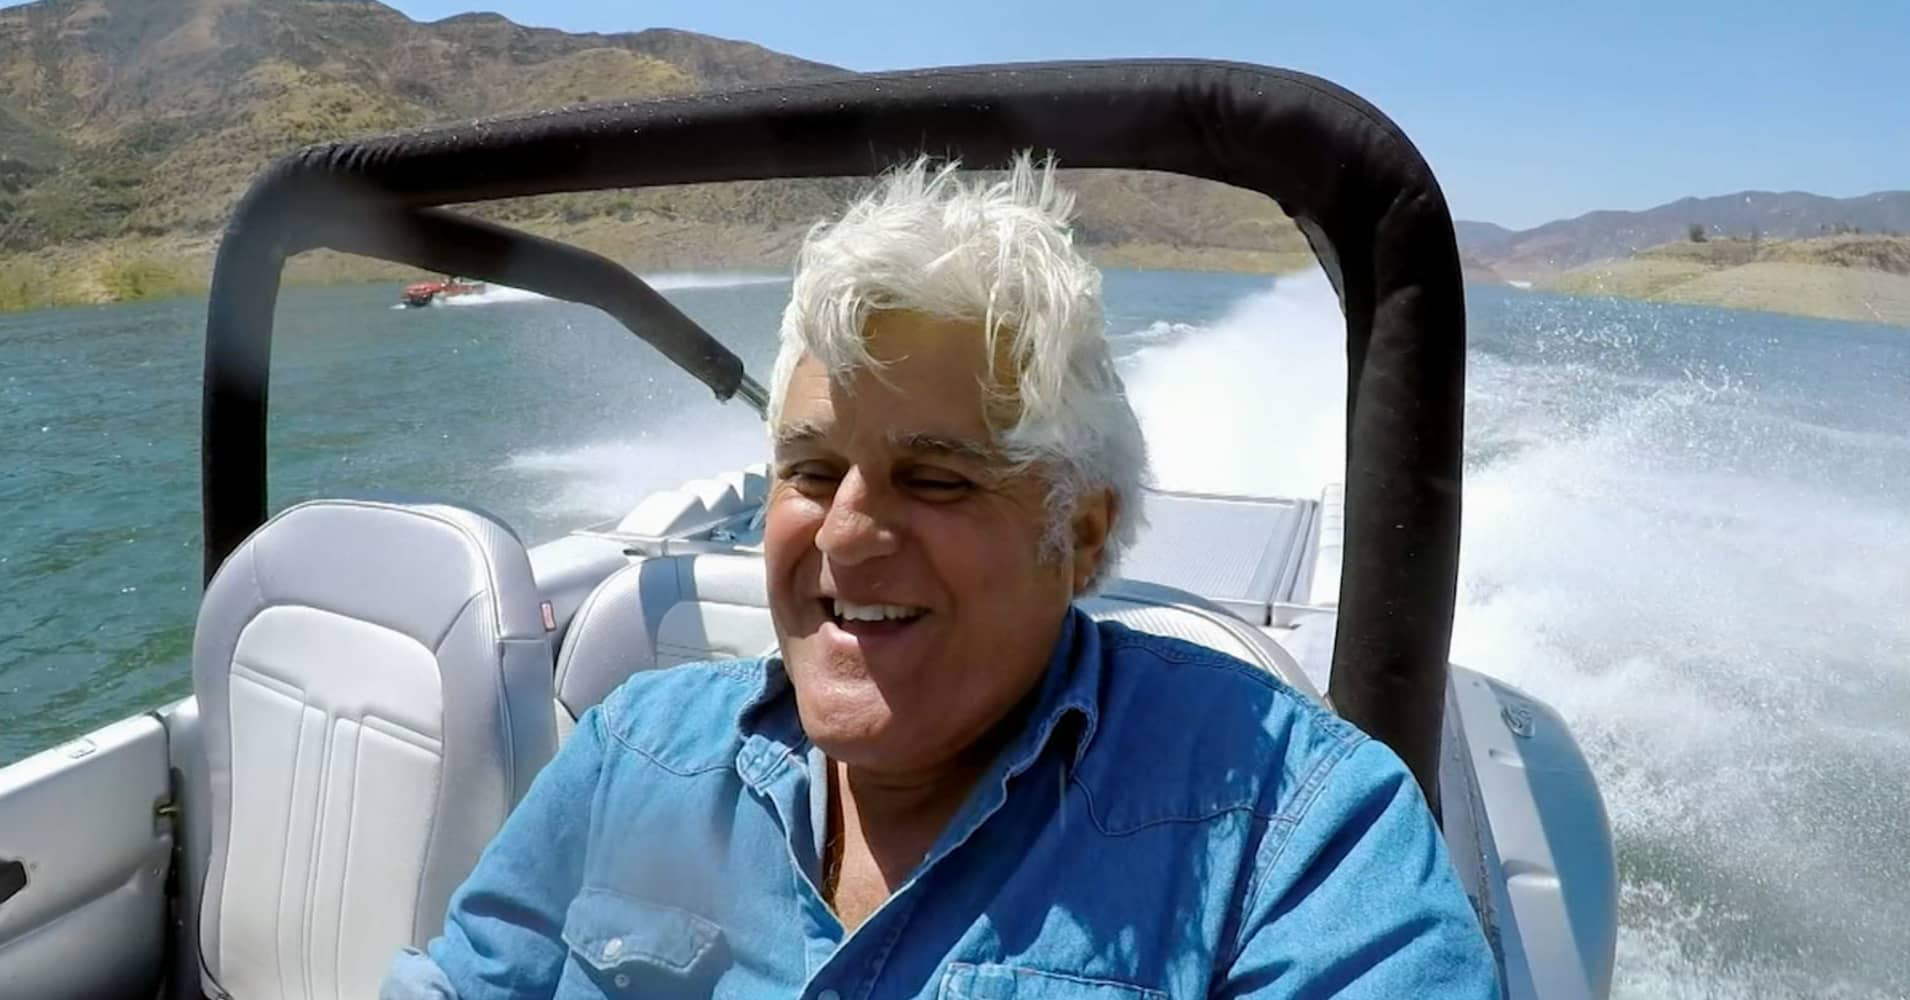 Jay Leno: The ignition key will be gone in 20 years and cars will drive themselves